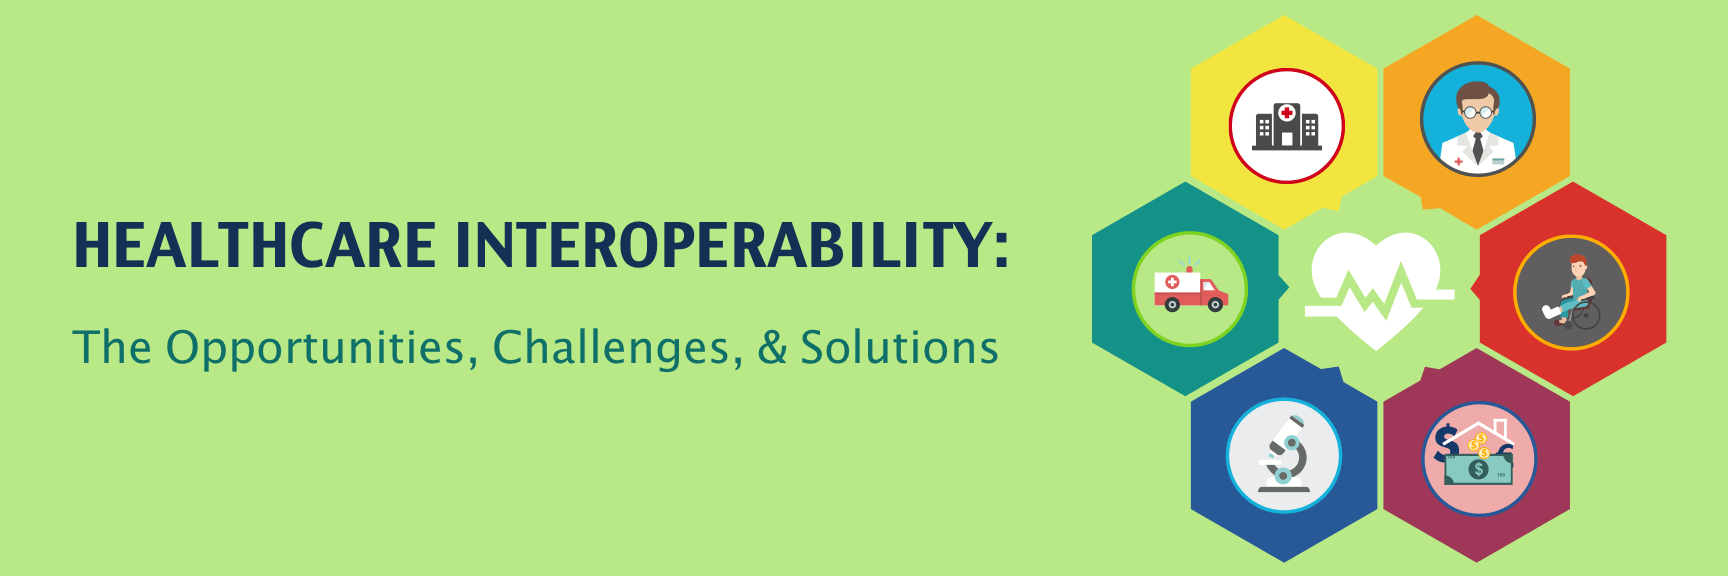 interoperability in healthcare: the benefits, challenges and solutions